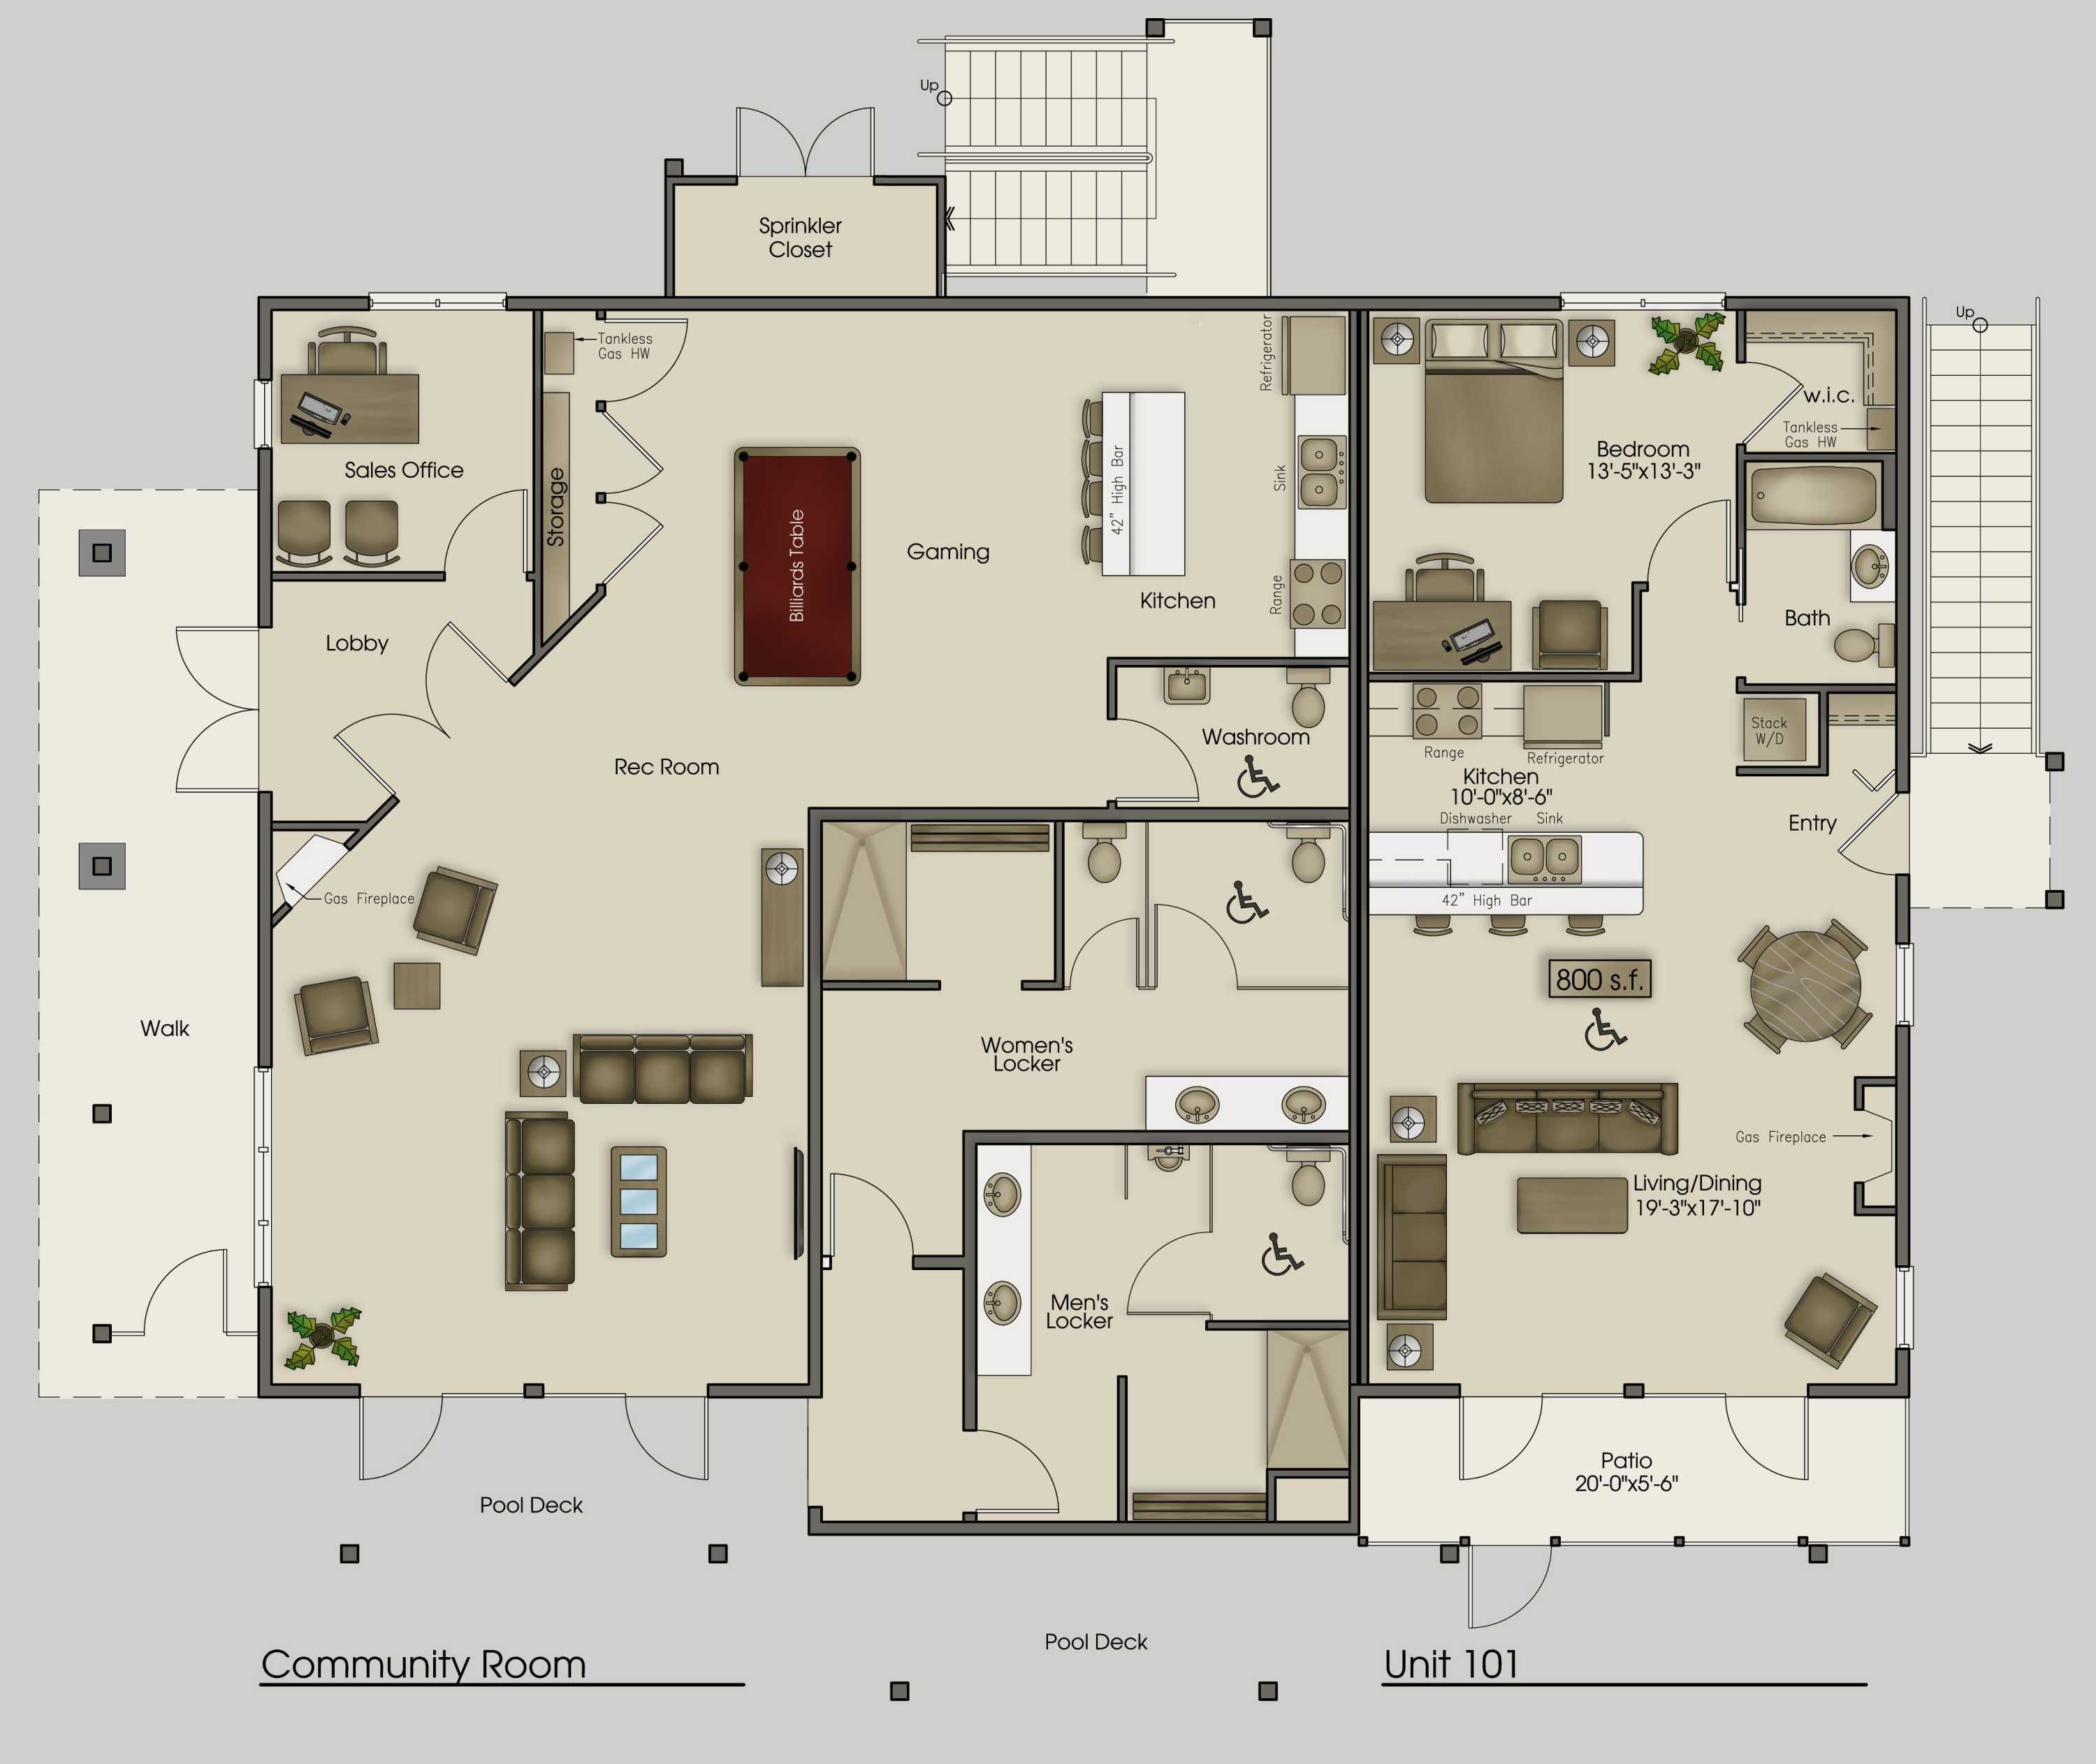 Mega villa plans clubhouse plan pictures apartments sample for Create floor plans online for free